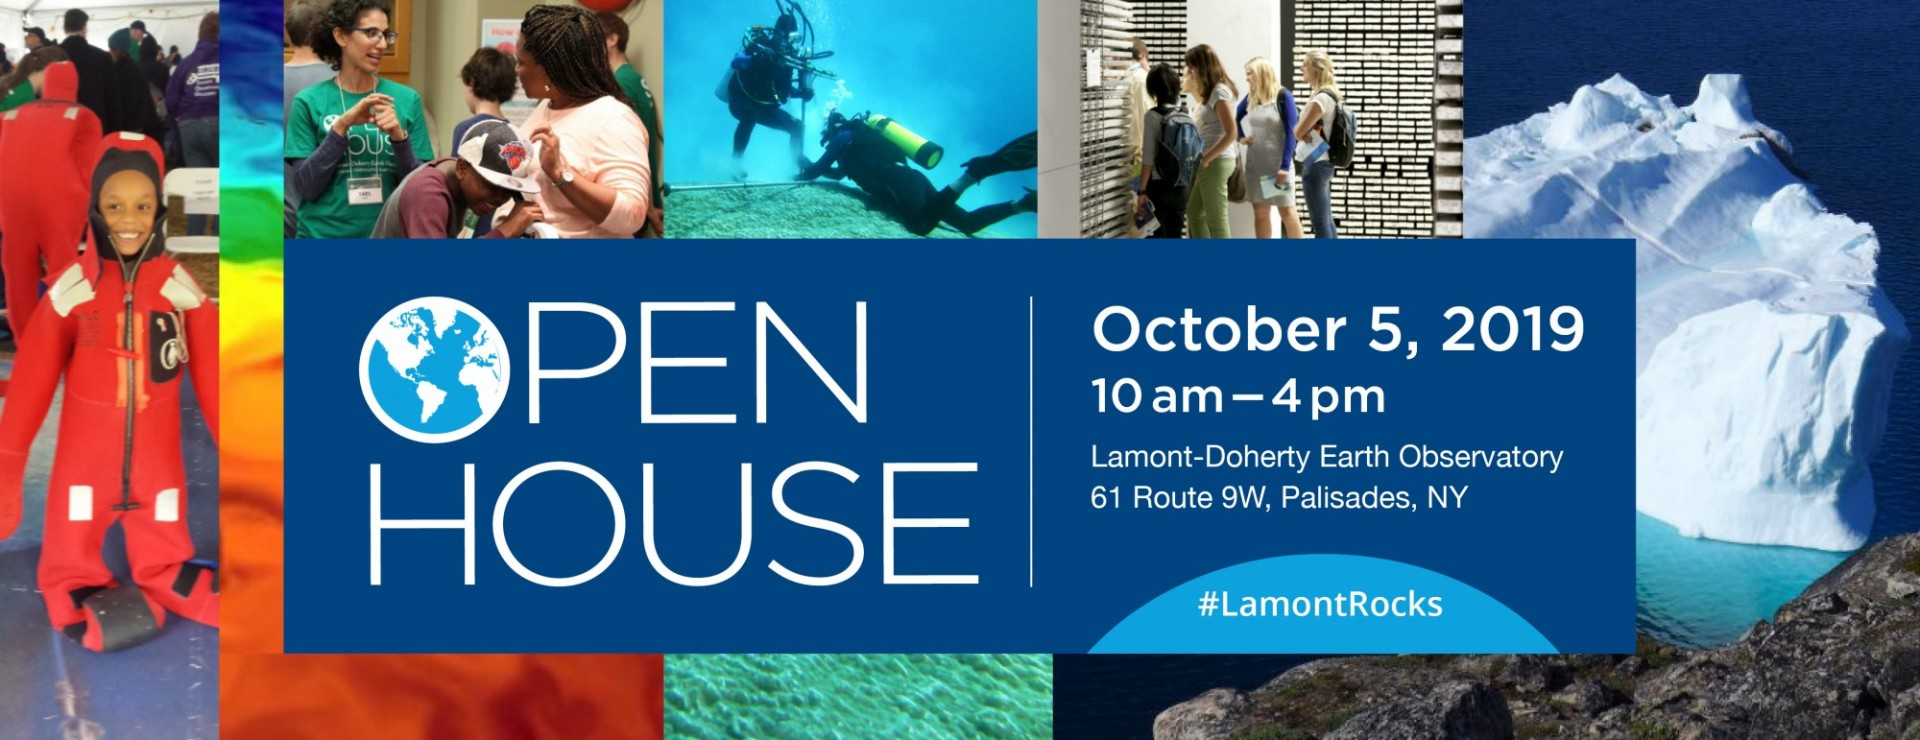 LDEO Open House - October 5, 2019